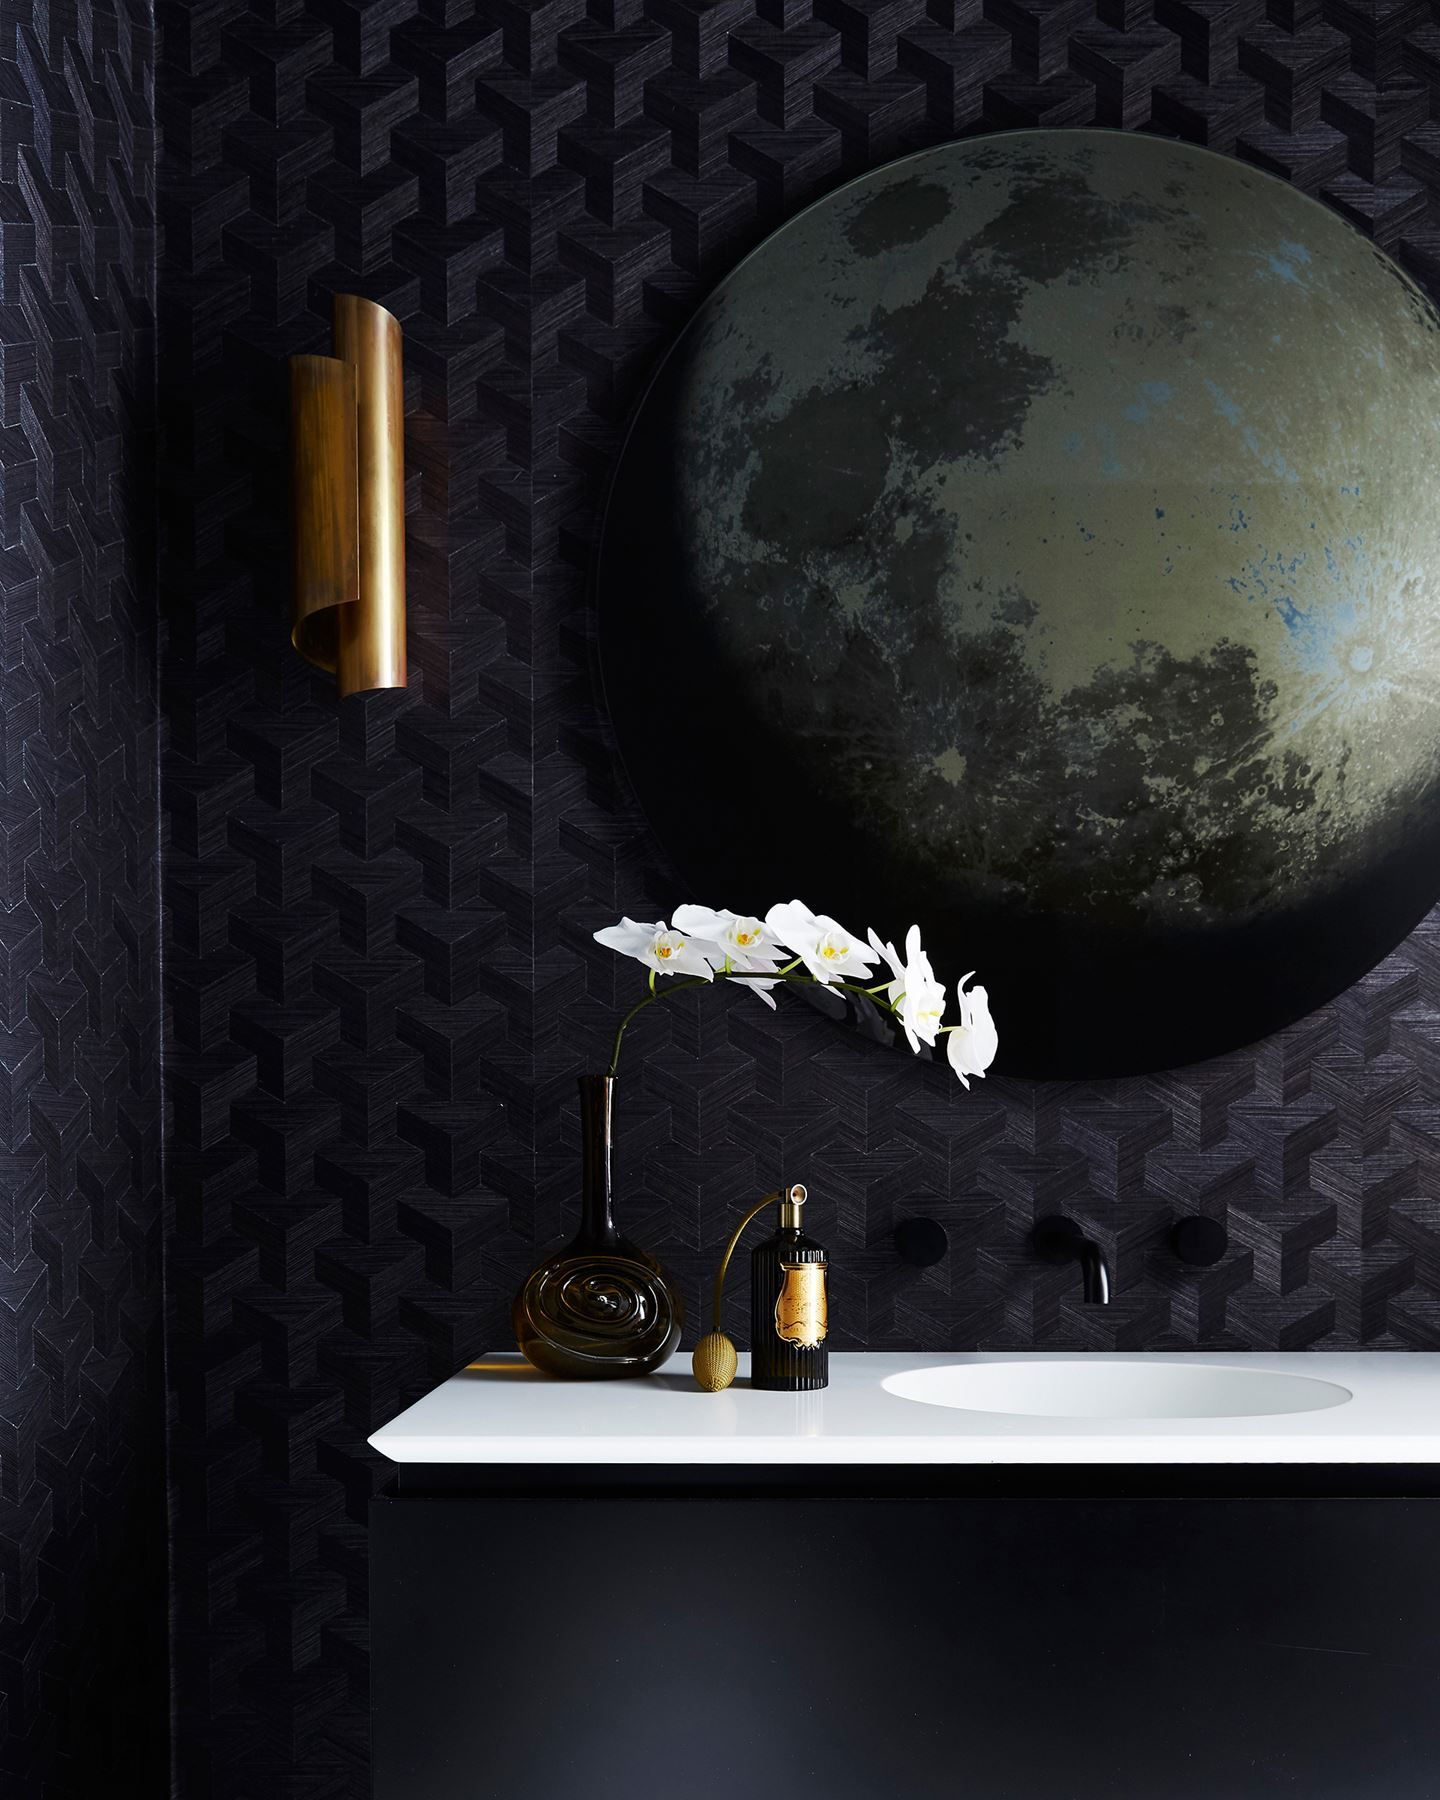 """Visitors are always wowed by the edgy powder room. """"The black wallpaper, black tapware and black ceiling give the powder room a moody ambience, and there's the concealed door that opens up to the hidden laundry,"""" says Poppy. """"It adds an element of the unexpected, so we call it the Bat Cave!"""" The brass wall lamp, bought online at 1stdibs.com, once adorned the walls of a luxury hotel in Switzerland. Corian benchtop with integrated basin. Xanadu sisal wallcovering, Unique Fabrics."""